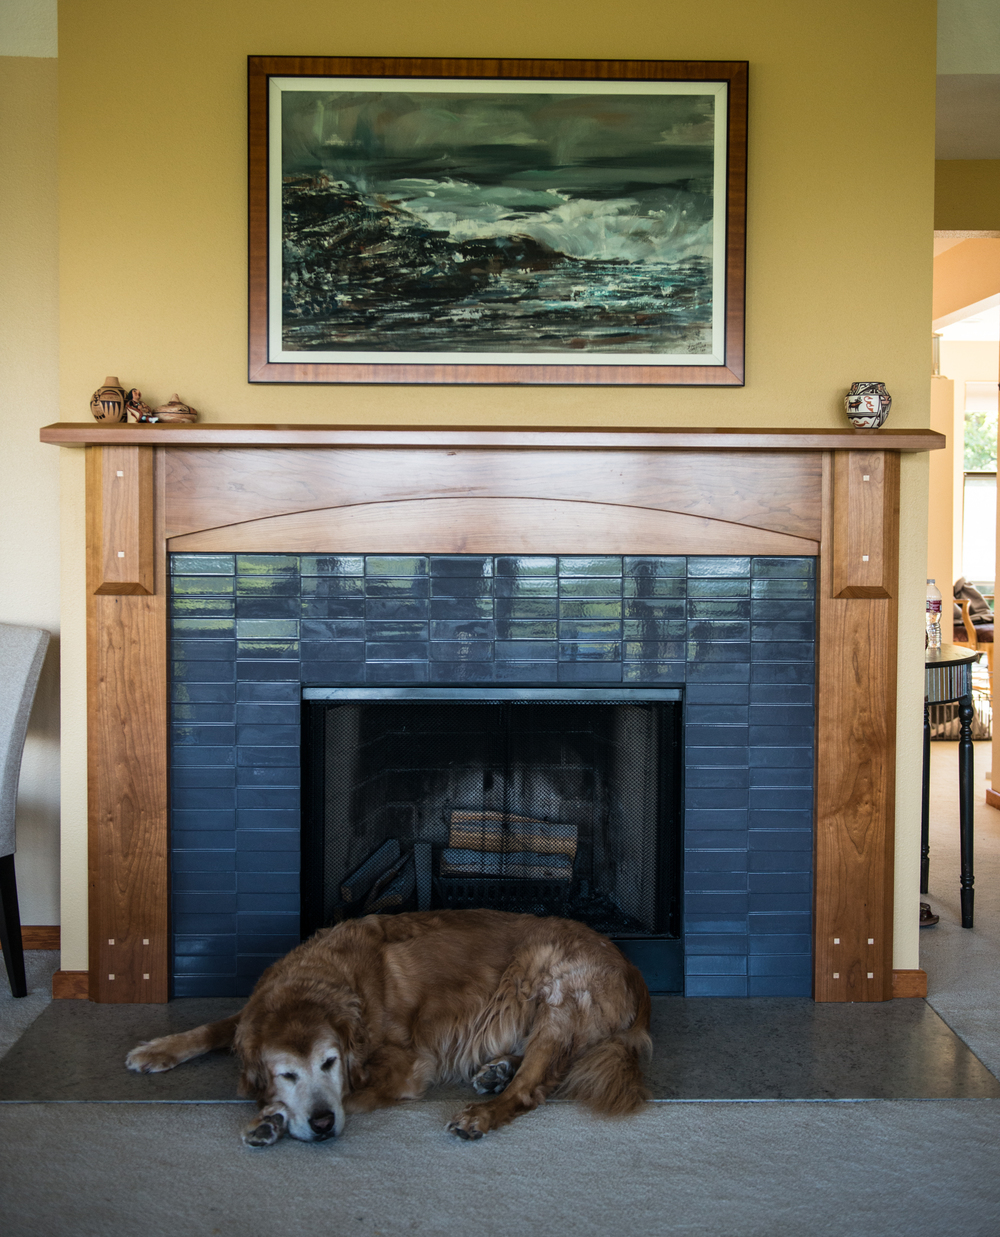 Fireplace with dog.jpg